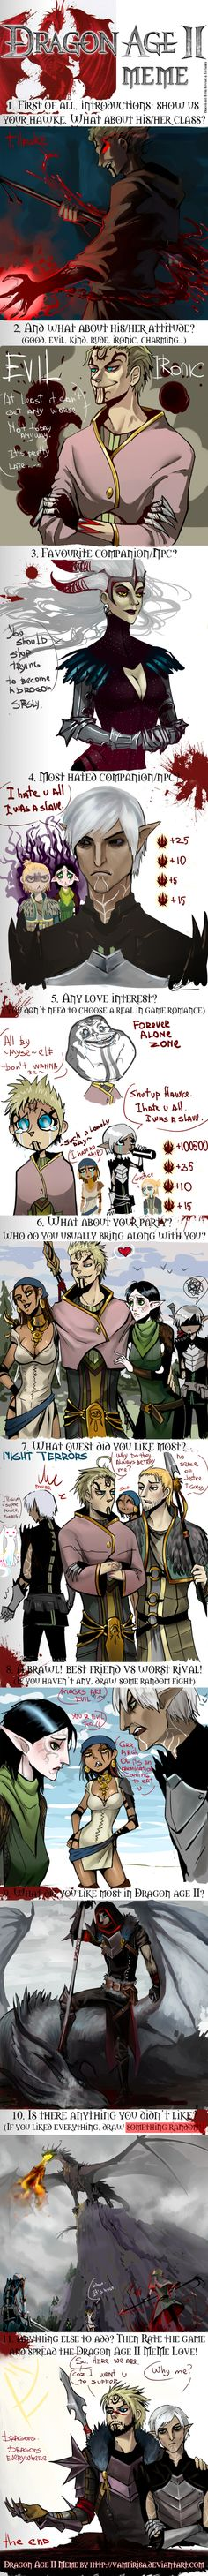 "Dragon Age II Meme by NanoeTetsu.deviantart.com on @deviantART ""Why me?' ""Because I want you to suffer"" LOLOLOLOLOL"